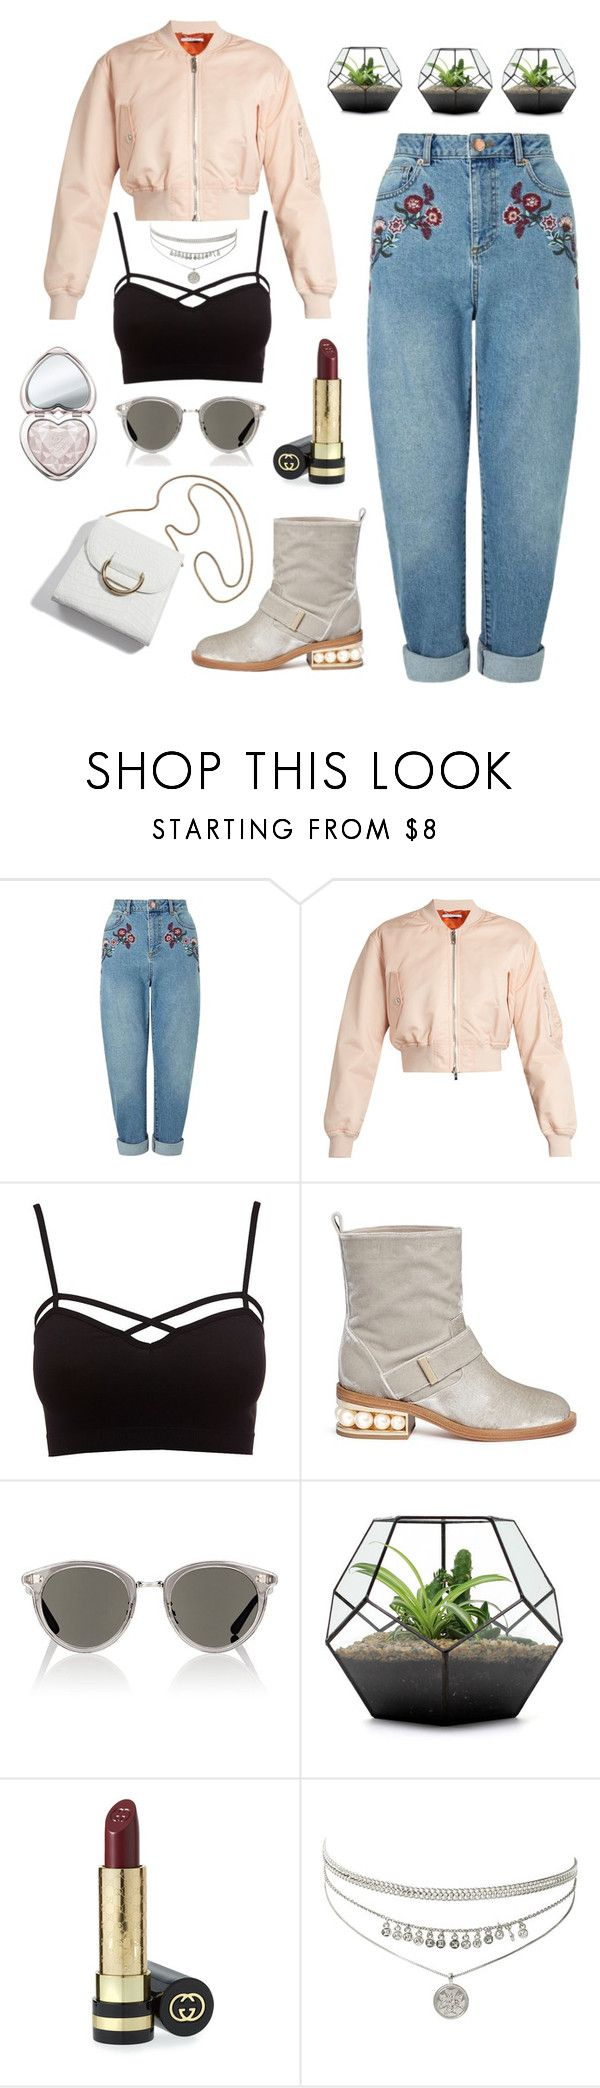 """Fresh"" by lanagur on Polyvore featuring мода, Miss Selfridge, Givenchy, Charlotte Russe, Nicholas Kirkwood, Oliver Peoples, Gucci, Too Faced Cosmetics, Spring и bomberjacket"